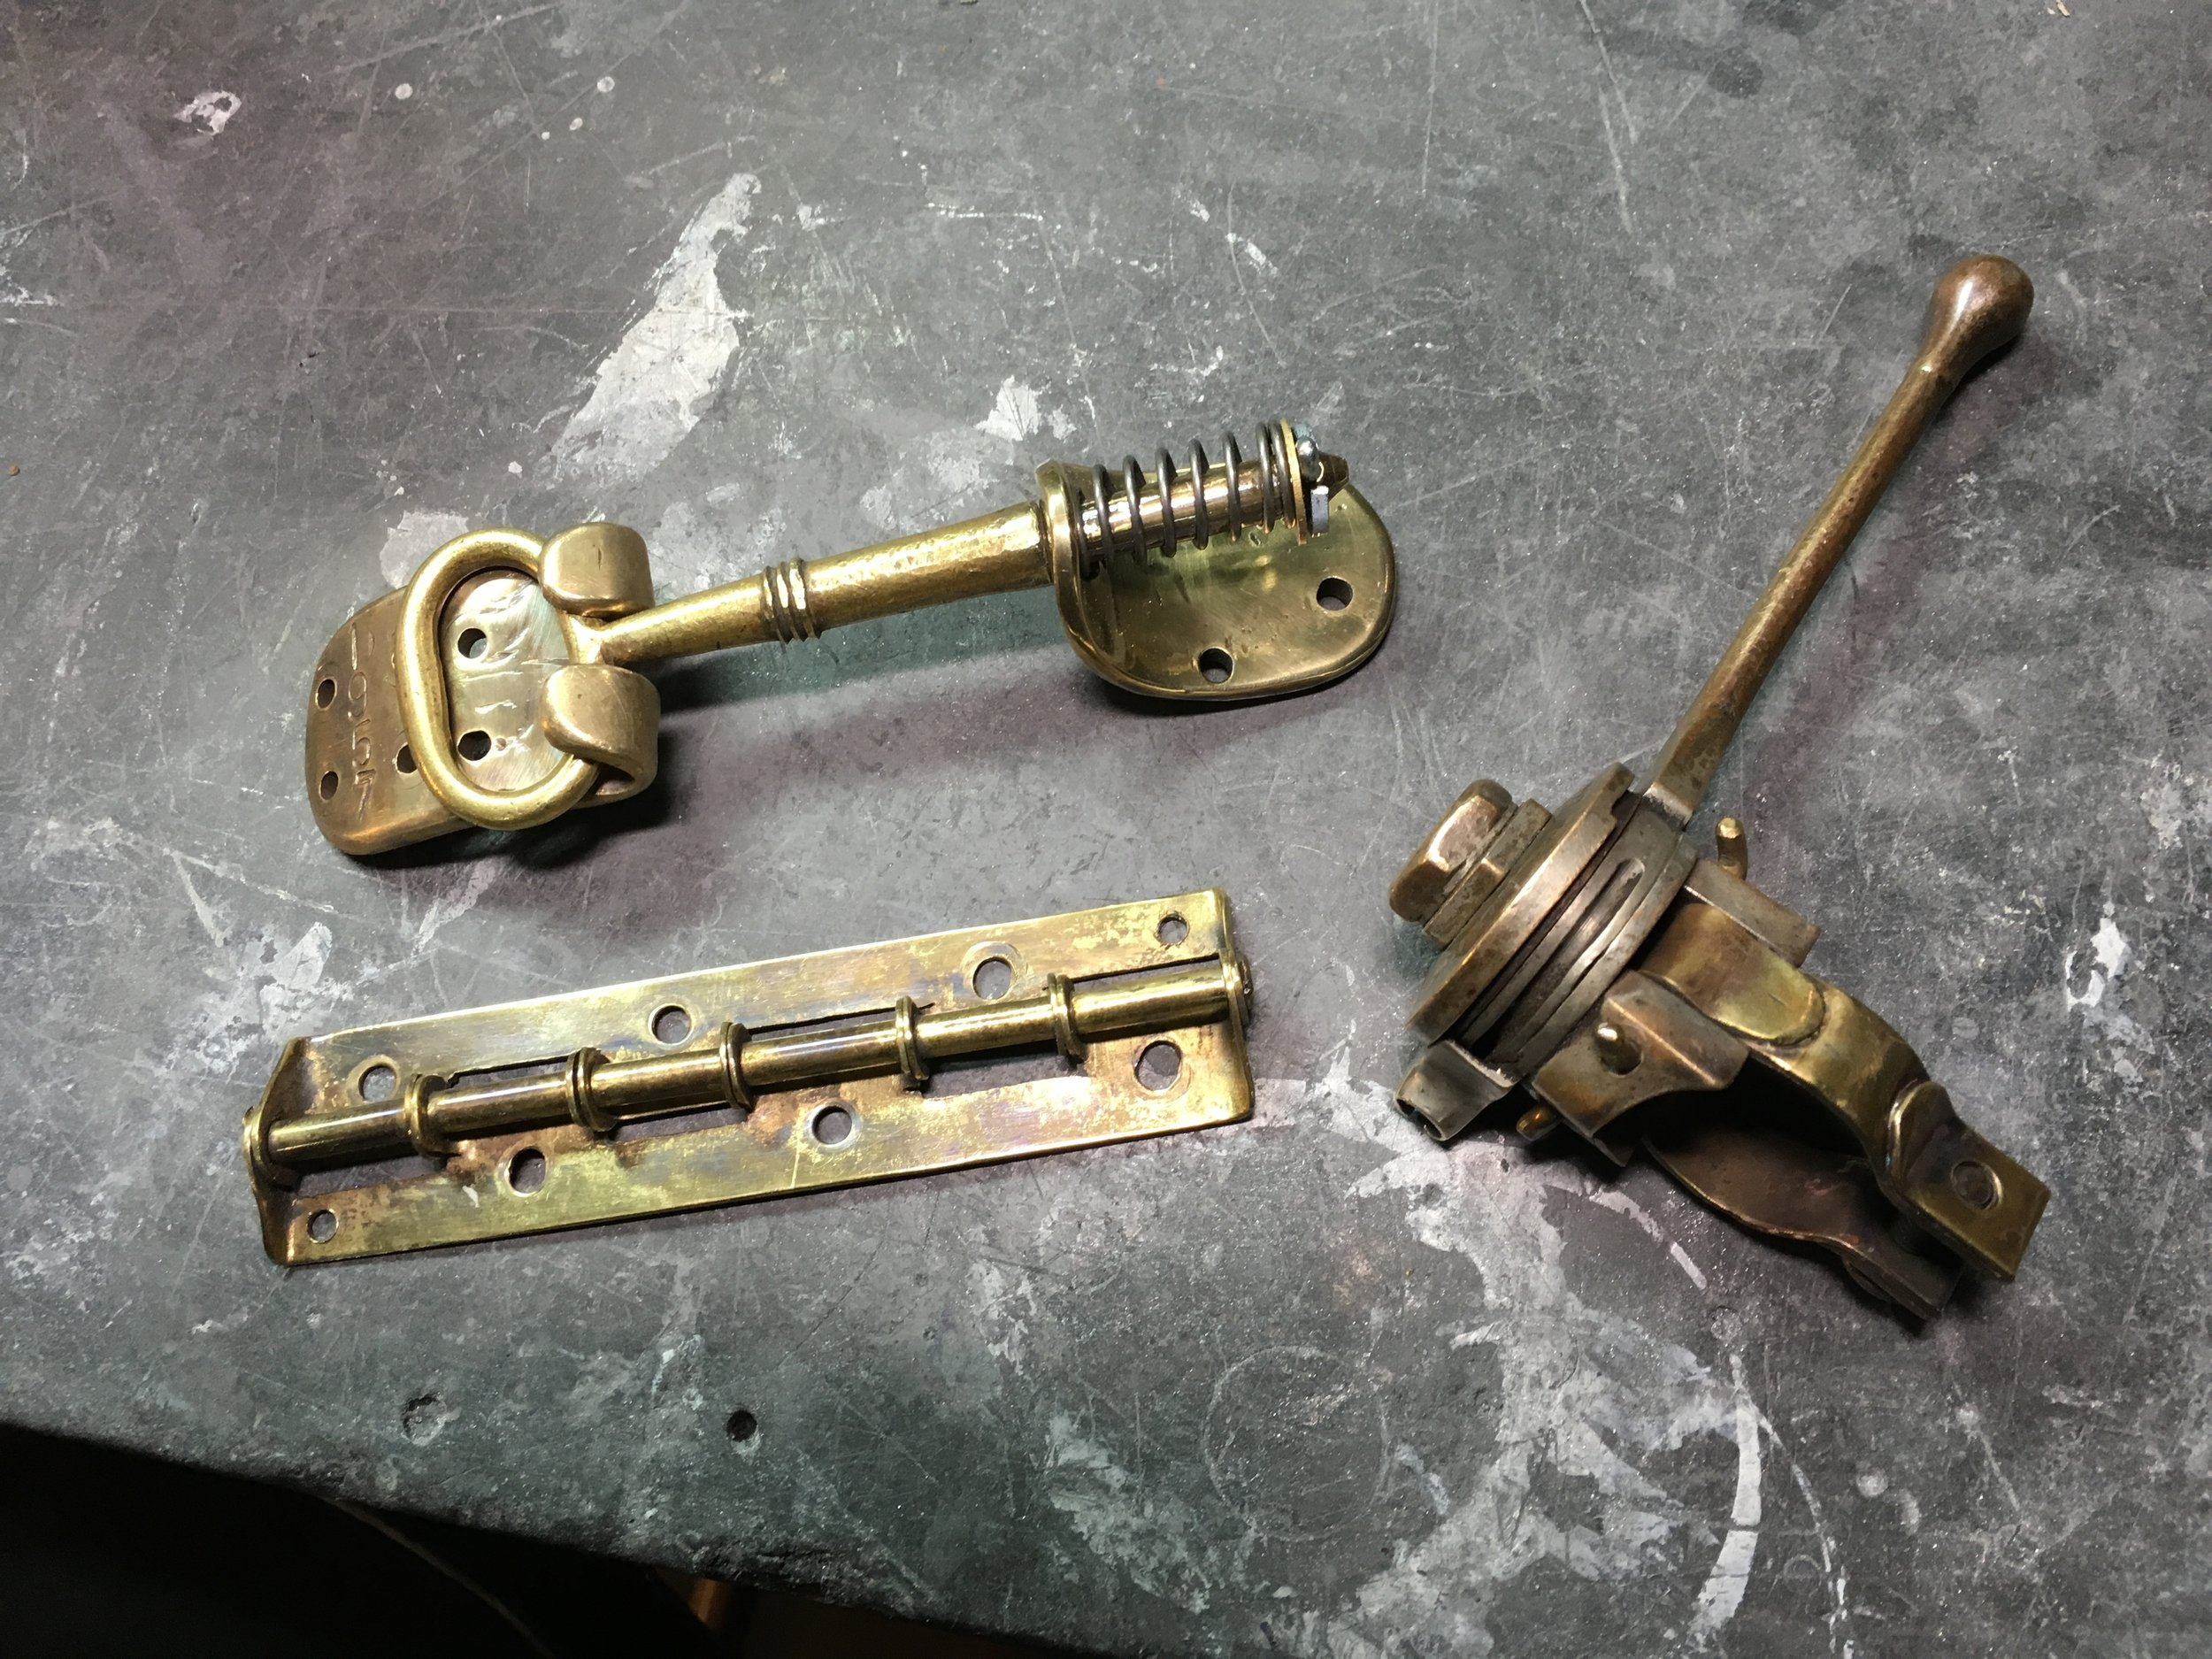 Put some more parts in the finished tray after some patina was applied. The key and top portion of the choke lever have the patina they came with, the rest was made to match. The hinge was made a couple of years ago from sheet brass and tubing.